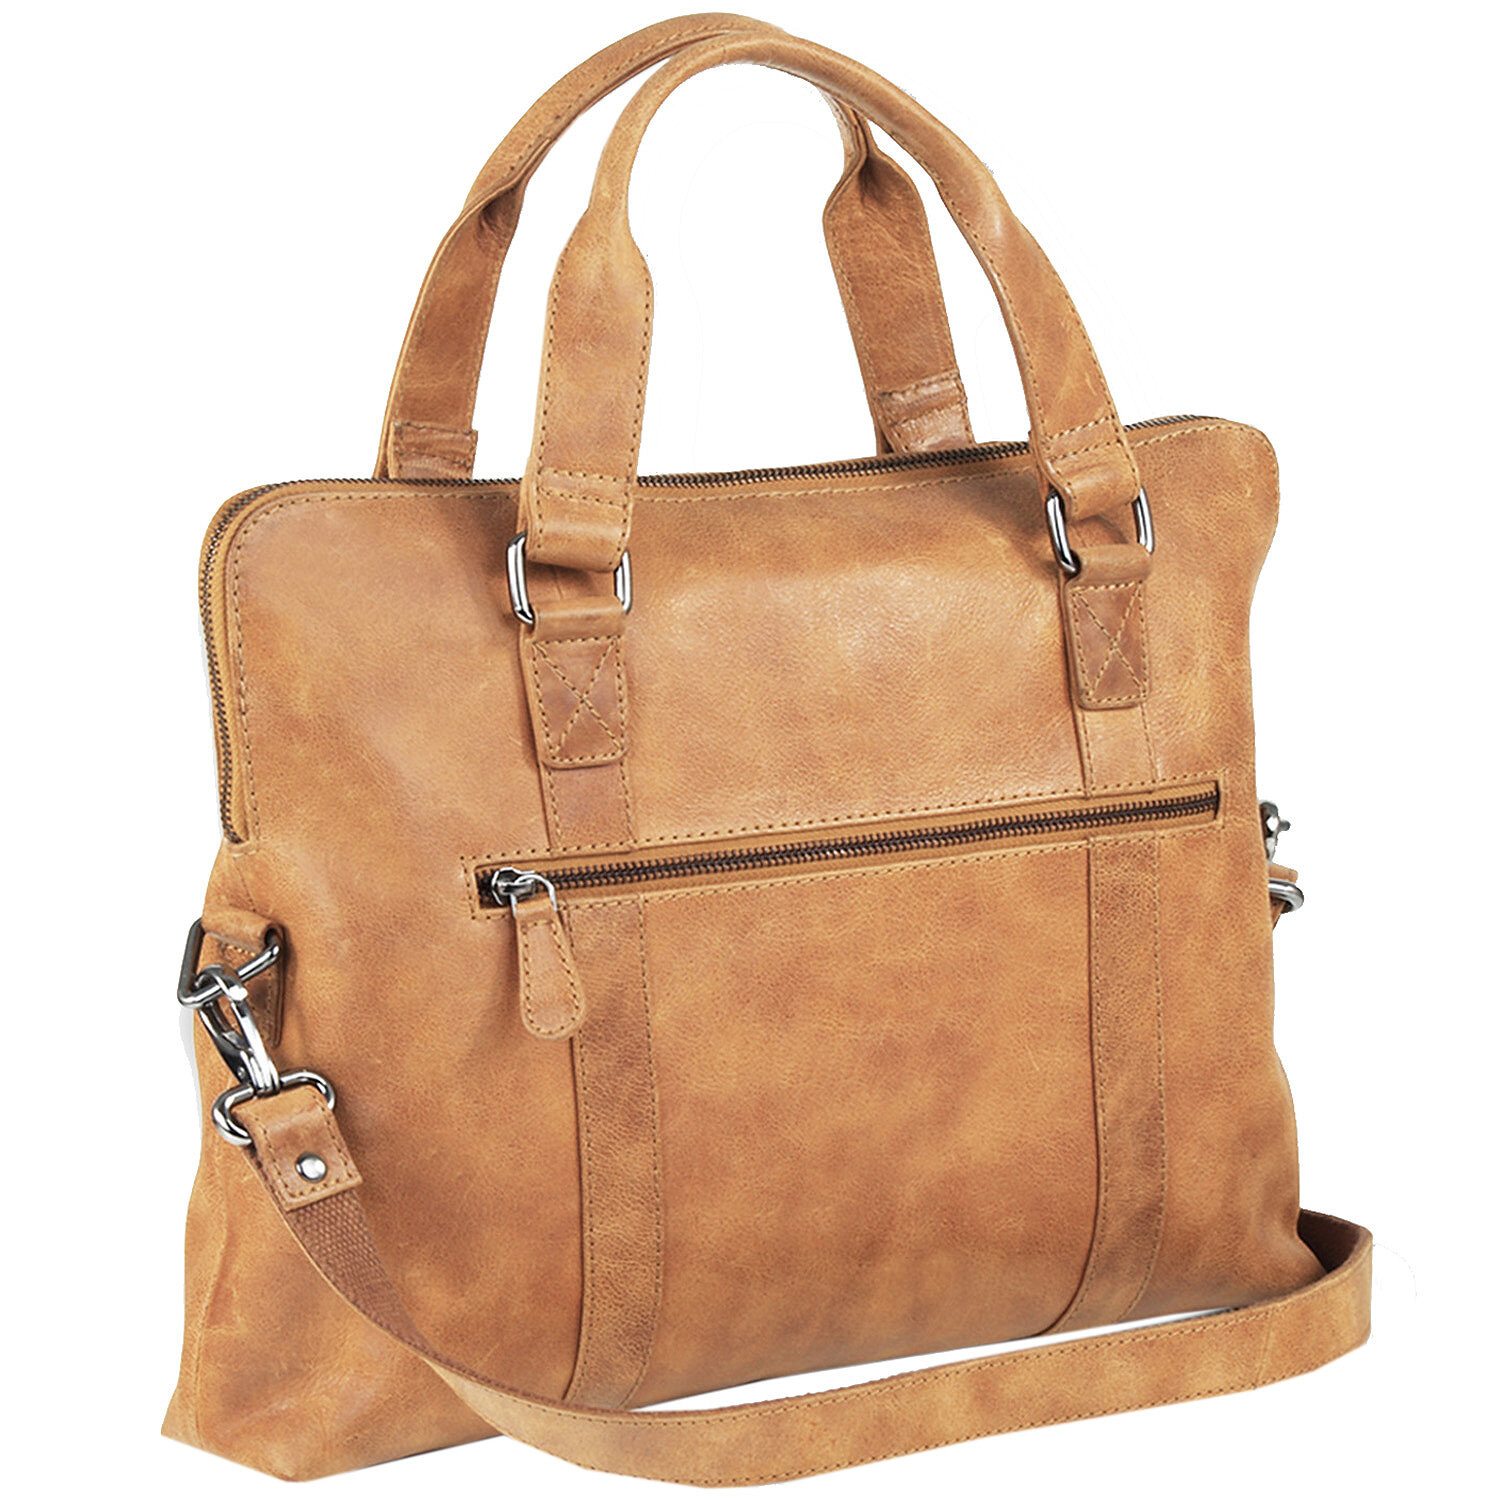 e49ddf5321115 Greenland Light Schultertasche Leder 38 cm Laptopfach Greenland Light Schultertasche  Leder 38 cm Laptopfach ...